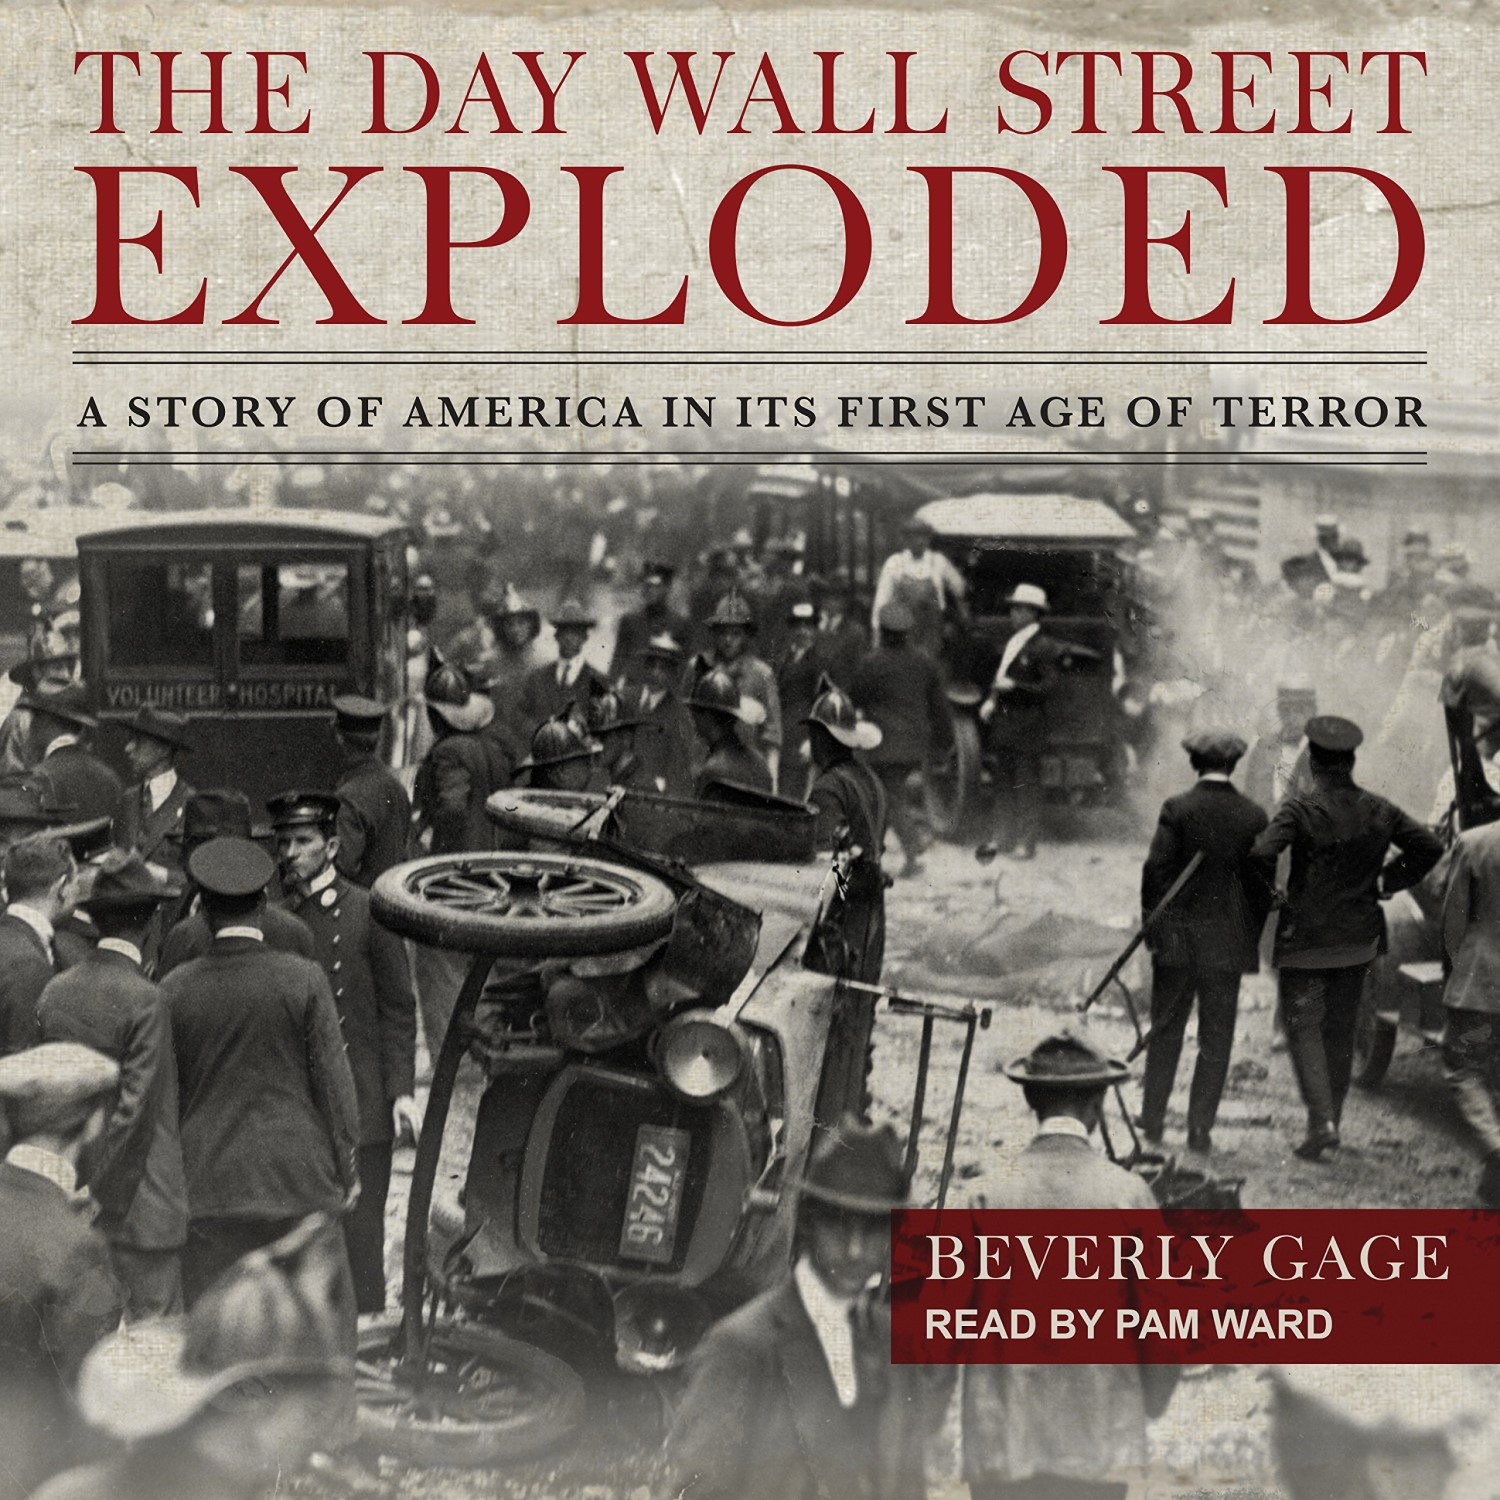 The day wall street exploded.jpg